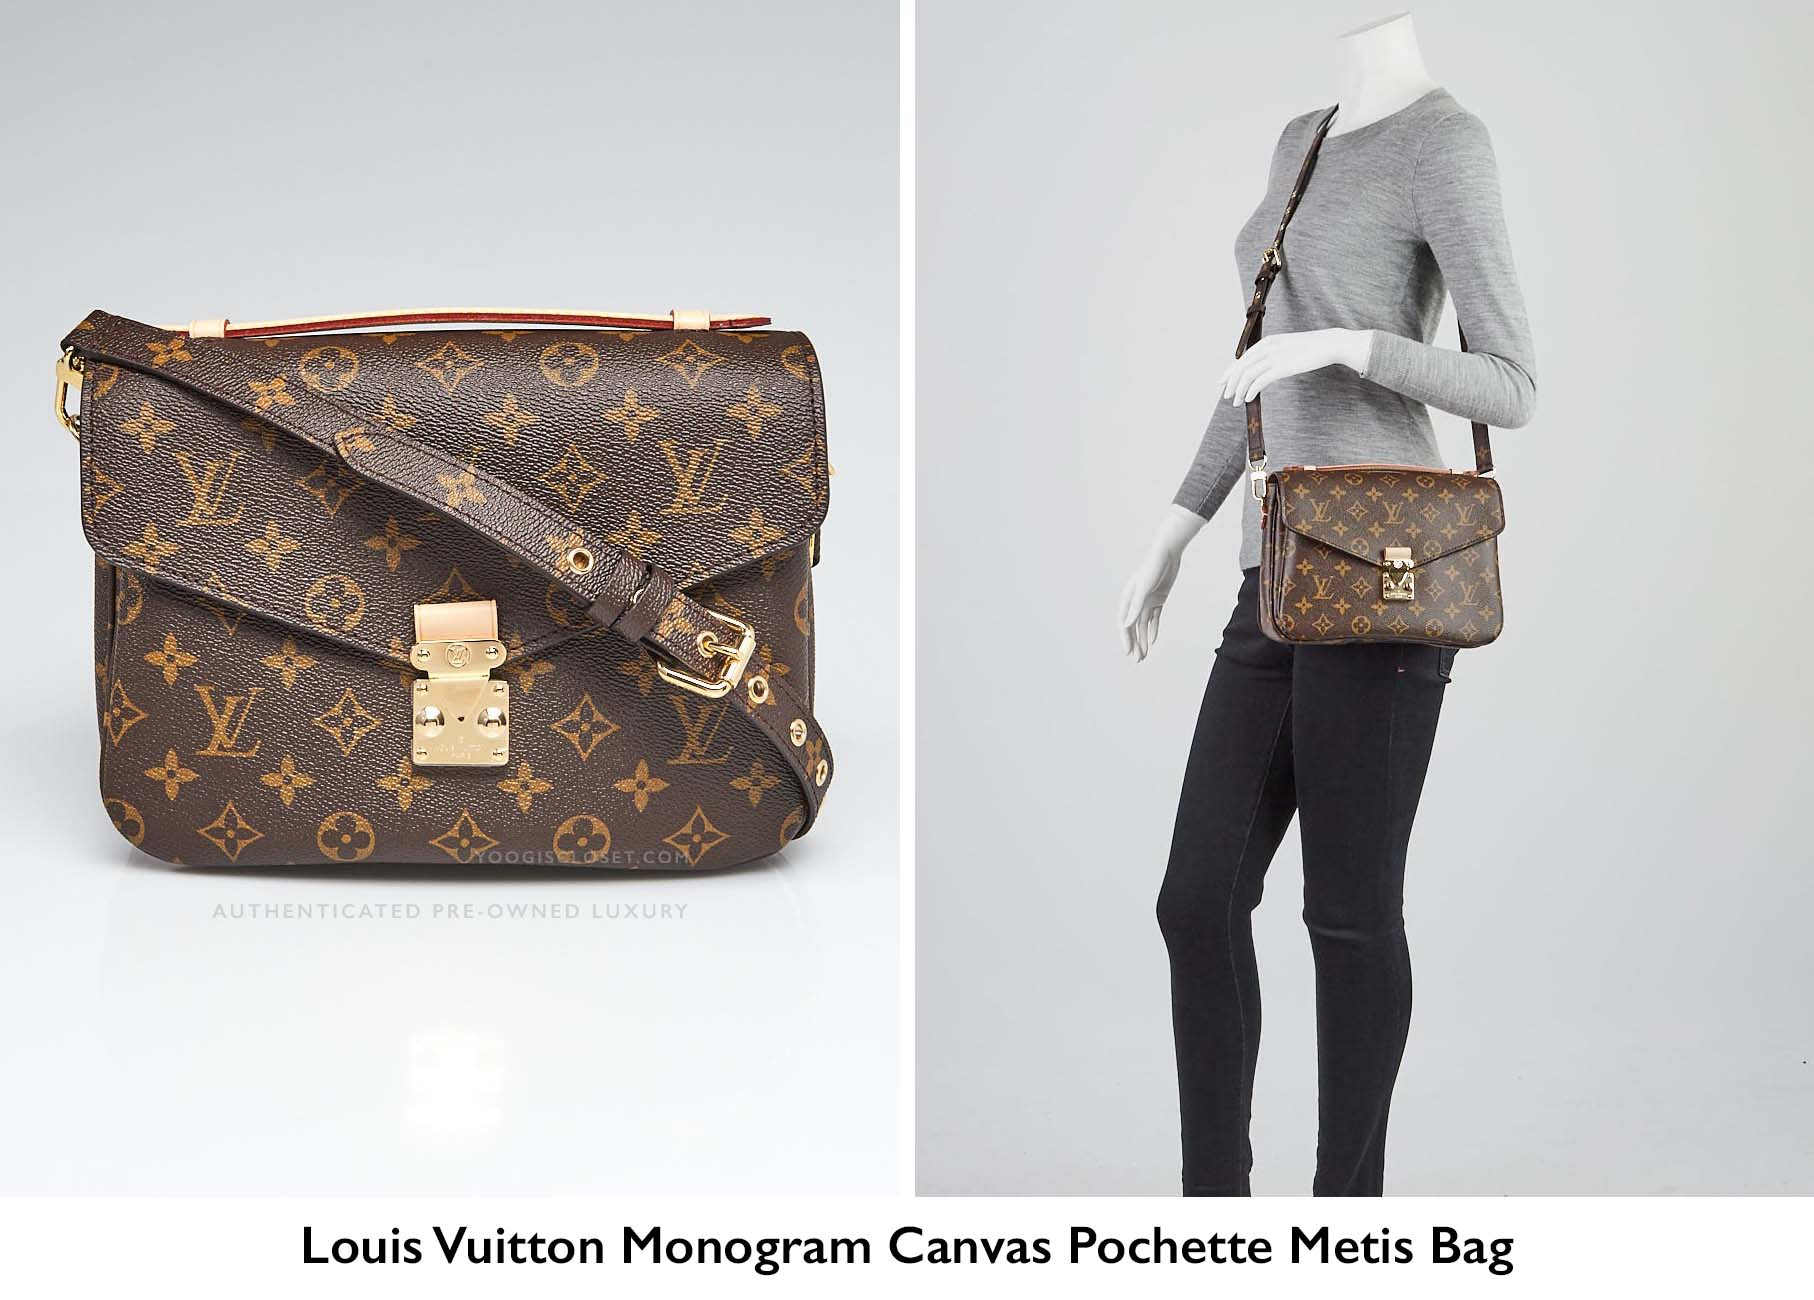 895321bc95b7 Authentic Louis Vuitton Monogram Canvas Pochette Metis Crossbody Bag